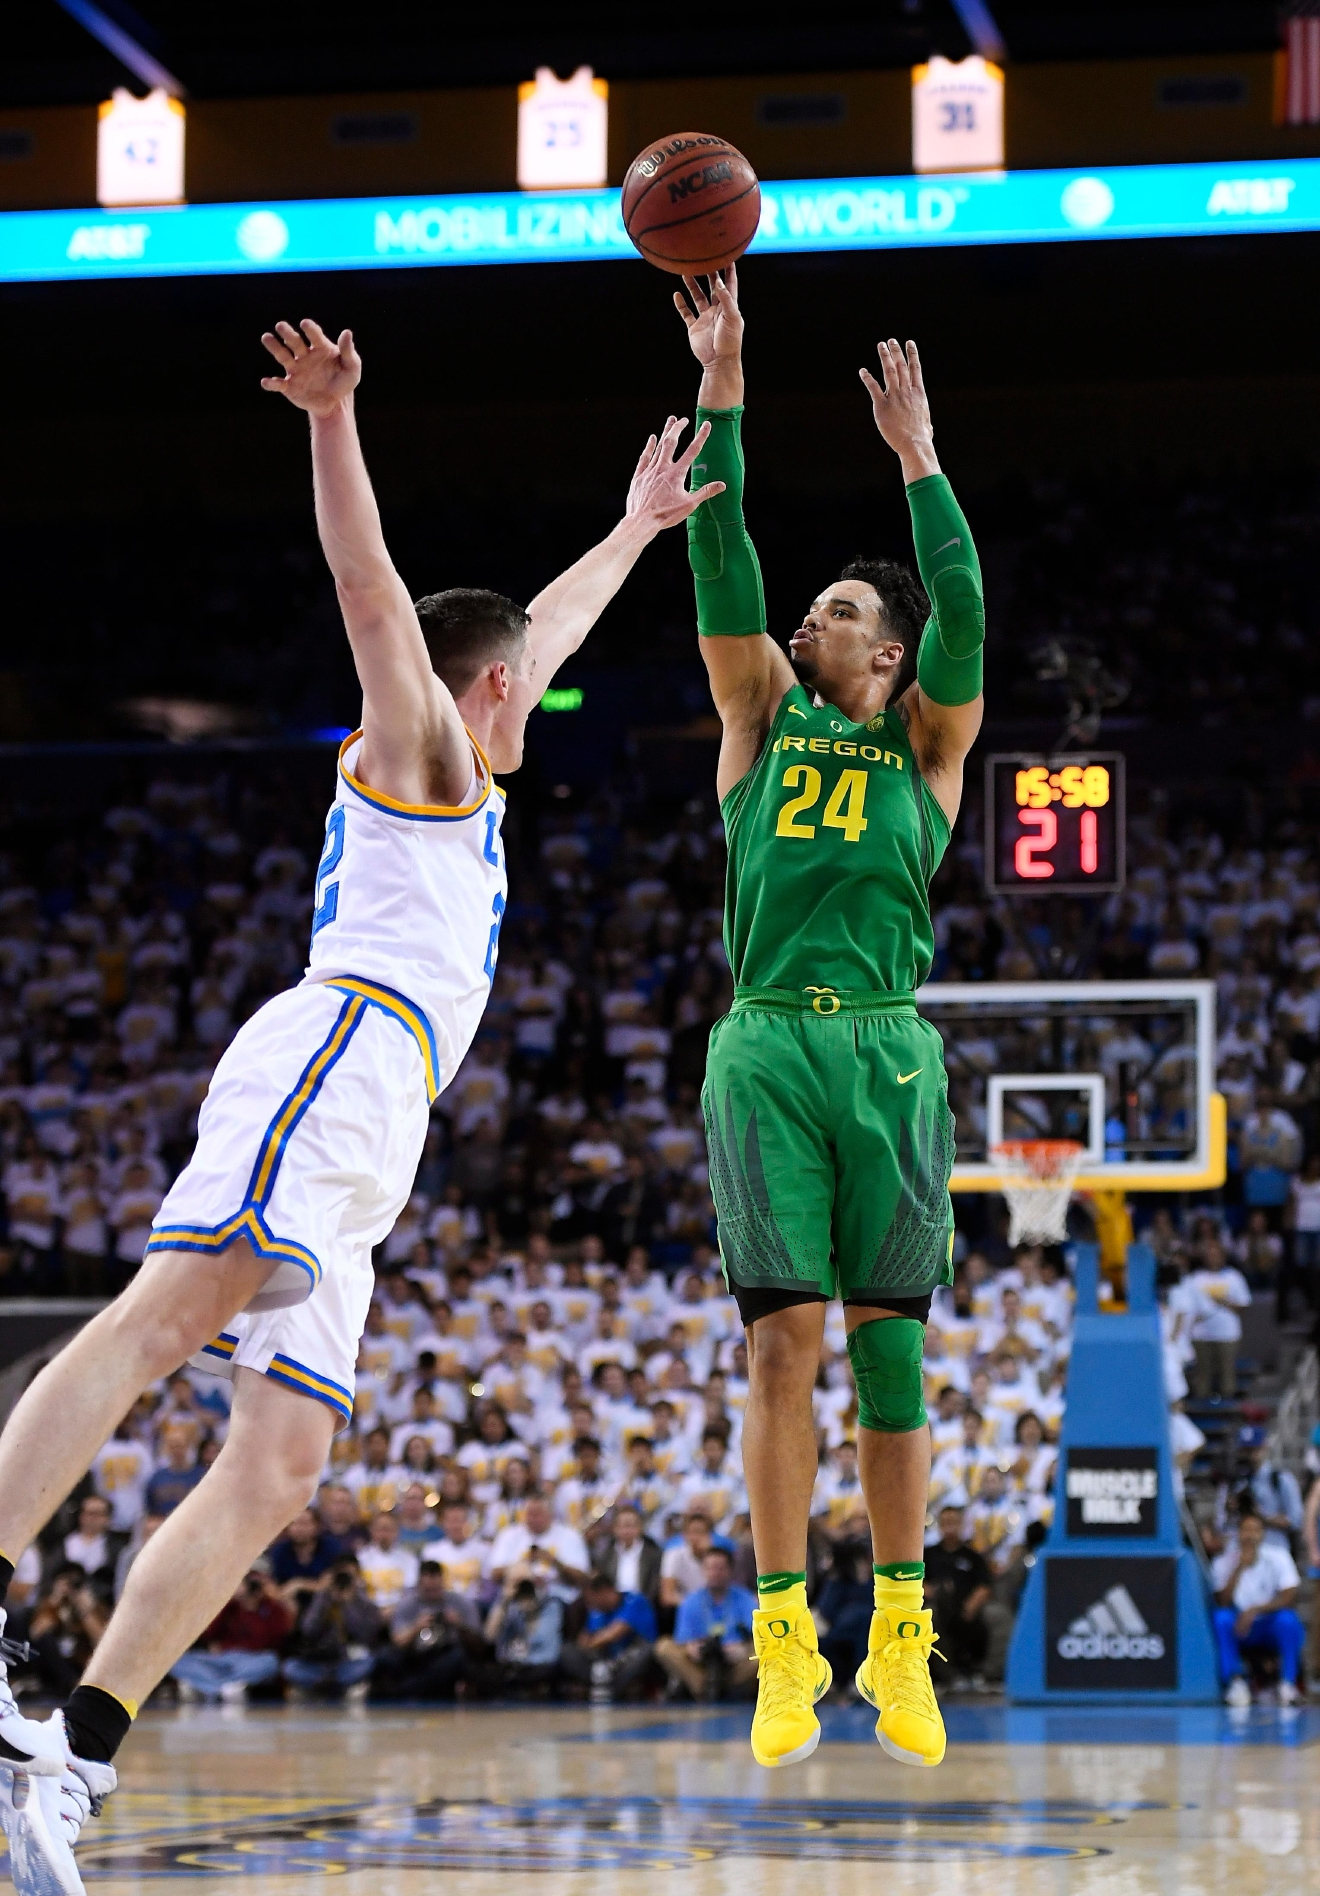 Oregon forward Dillon Brooks, right, shoots as UCLA forward TJ Leaf defends during the first half of an NCAA college basketball game, Thursday, Feb. 9, 2017, in Los Angeles. (AP Photo/Mark J. Terrill)